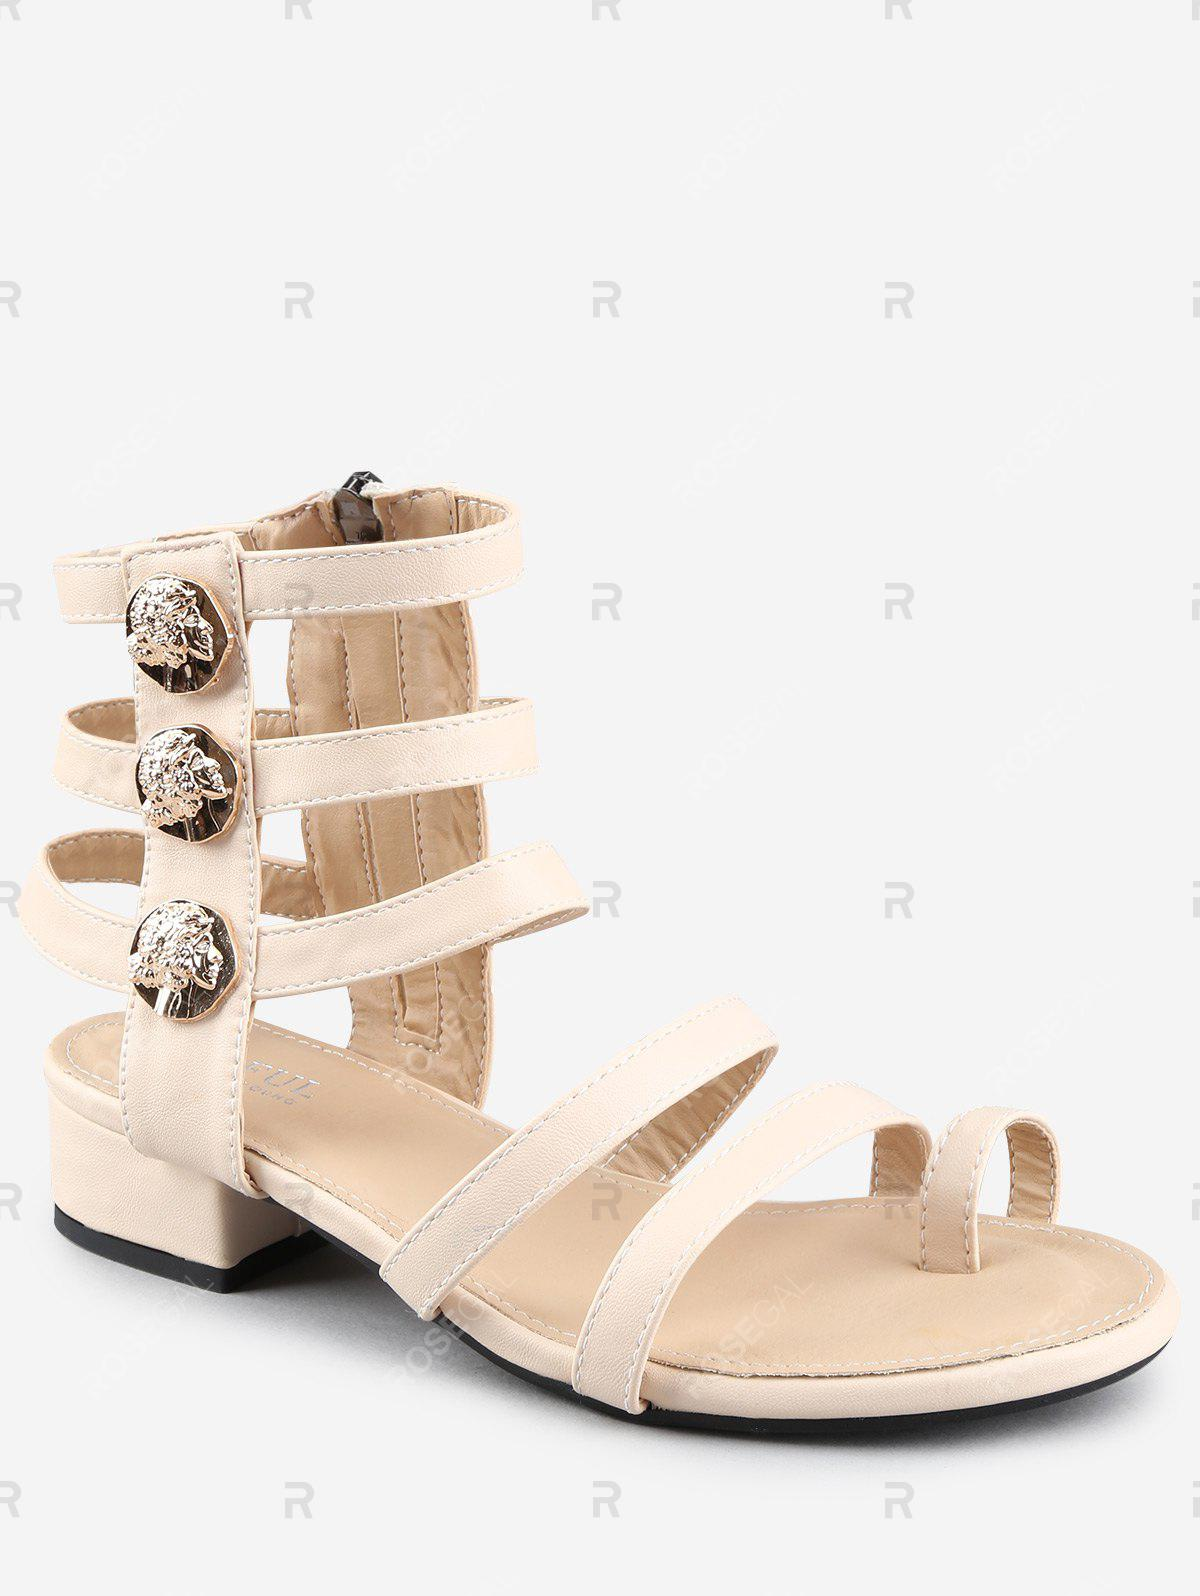 Chic Low Heel Gladiator Strappy Thong Sandals